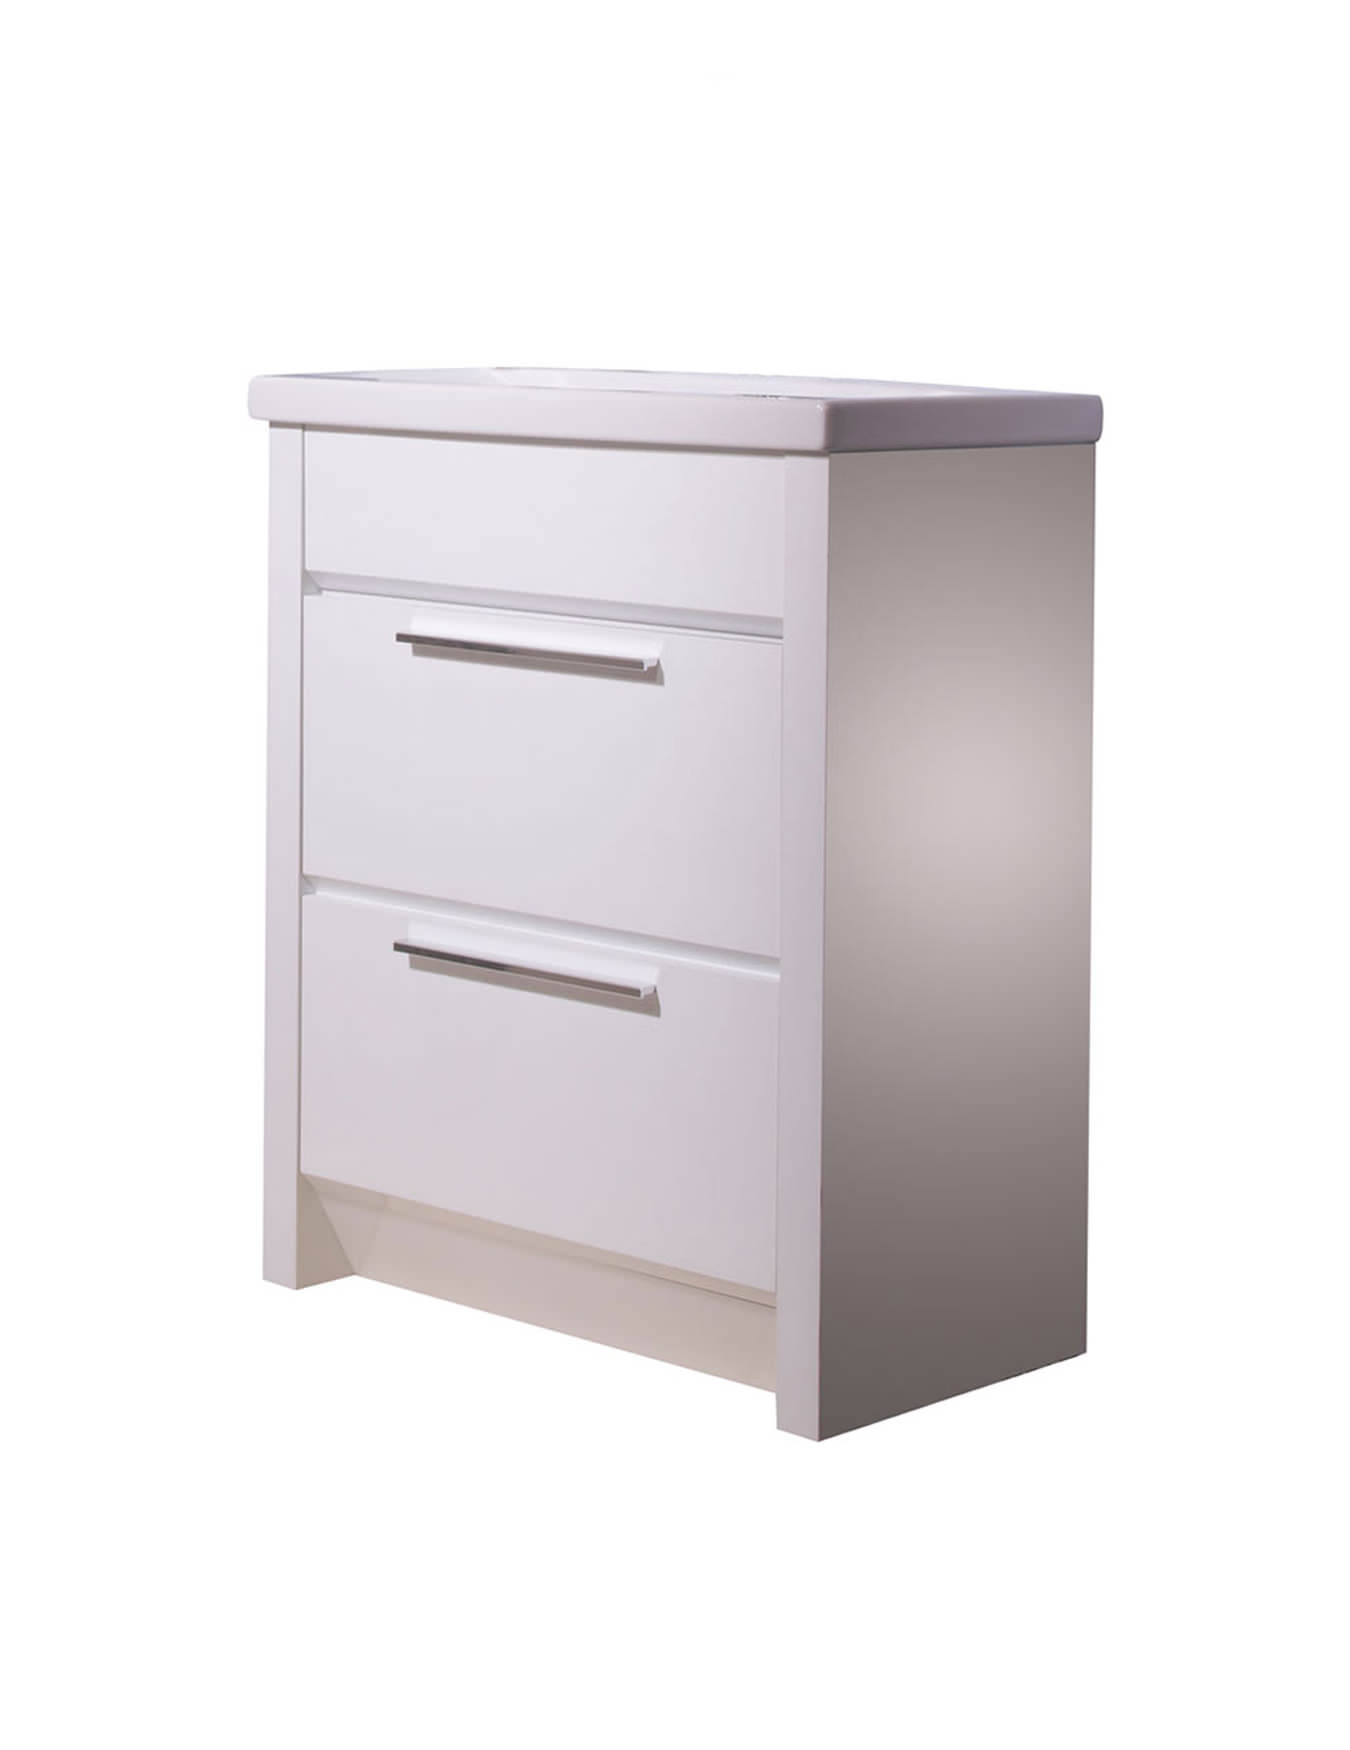 Roper Rhodes Kato 700mm White Freestanding Vanity Unit Including Basin